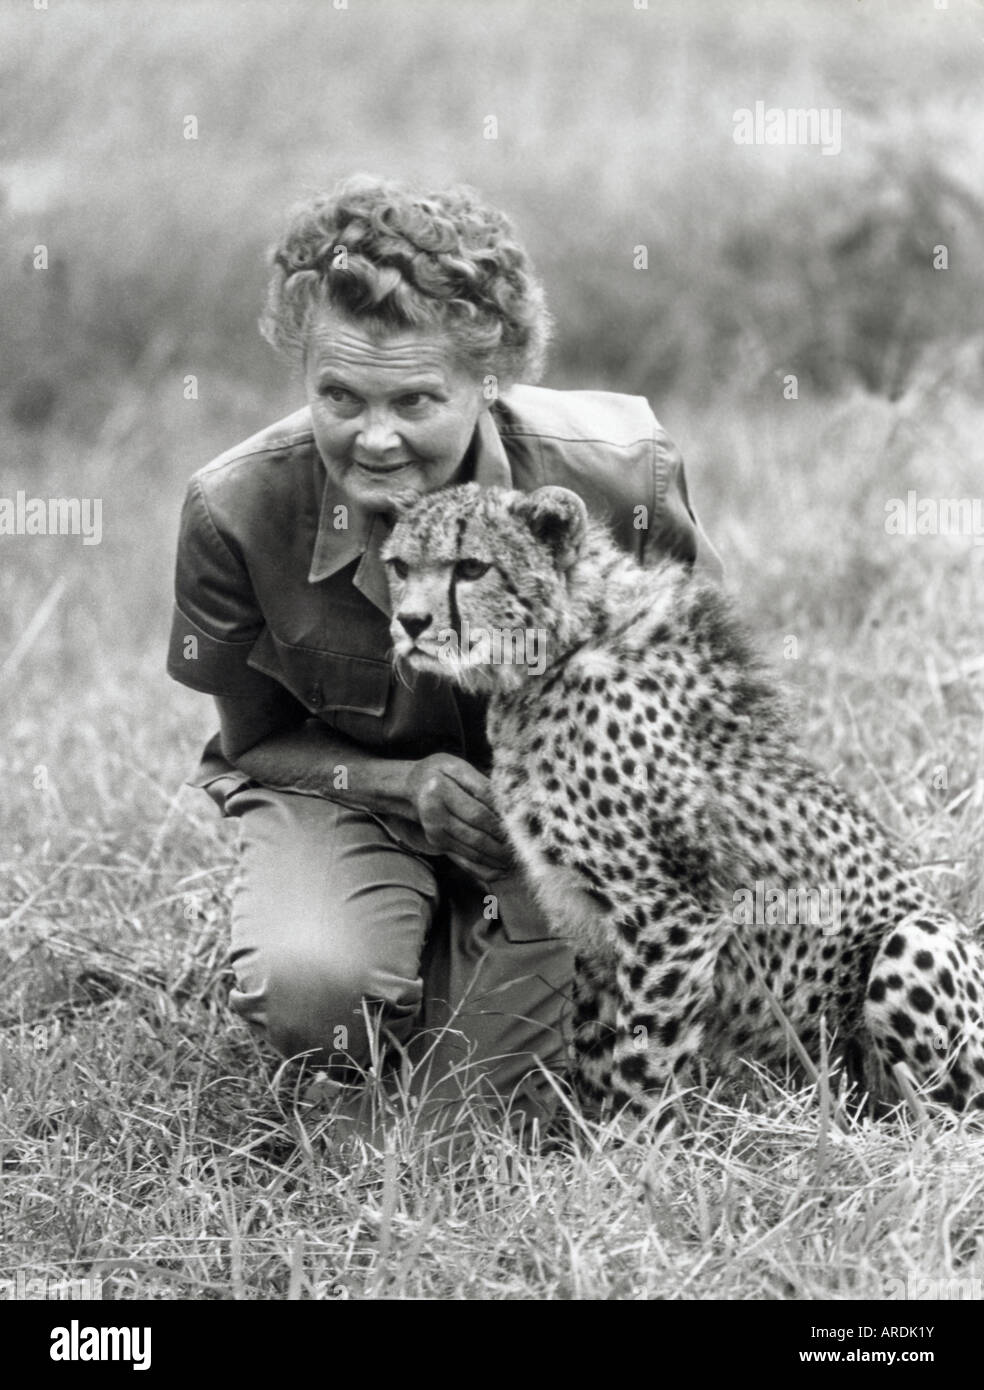 https://c8.alamy.com/comp/ARDK1Y/joy-adamson-famous-for-work-with-big-cats-posing-with-a-cheetah-ARDK1Y.jpg